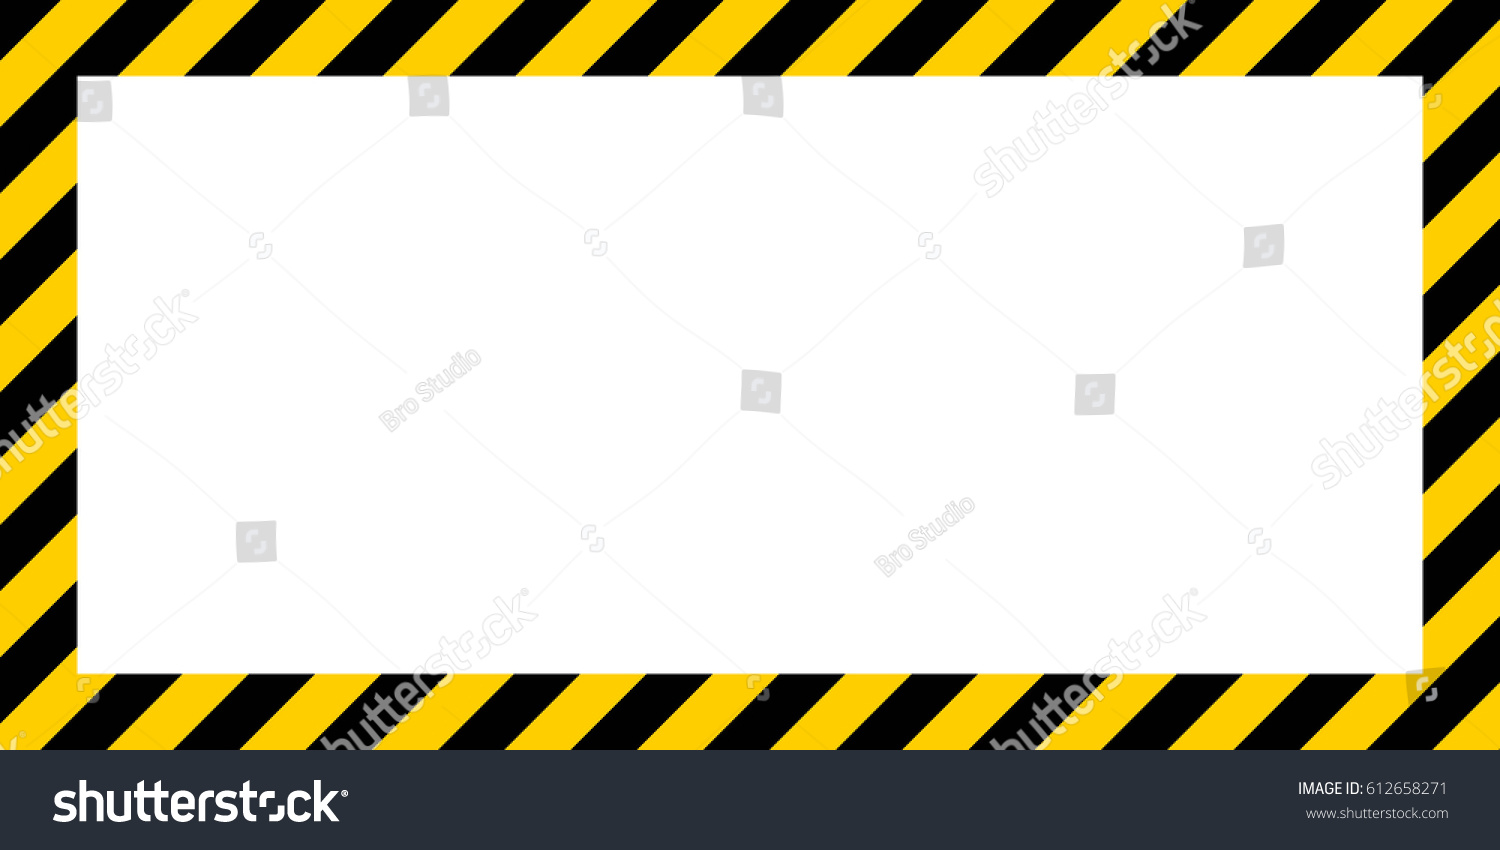 Border frame with black and yellow stripe on white background - Warning Striped Rectangular Background Yellow And Black Stripes On The Diagonal Warning To Be